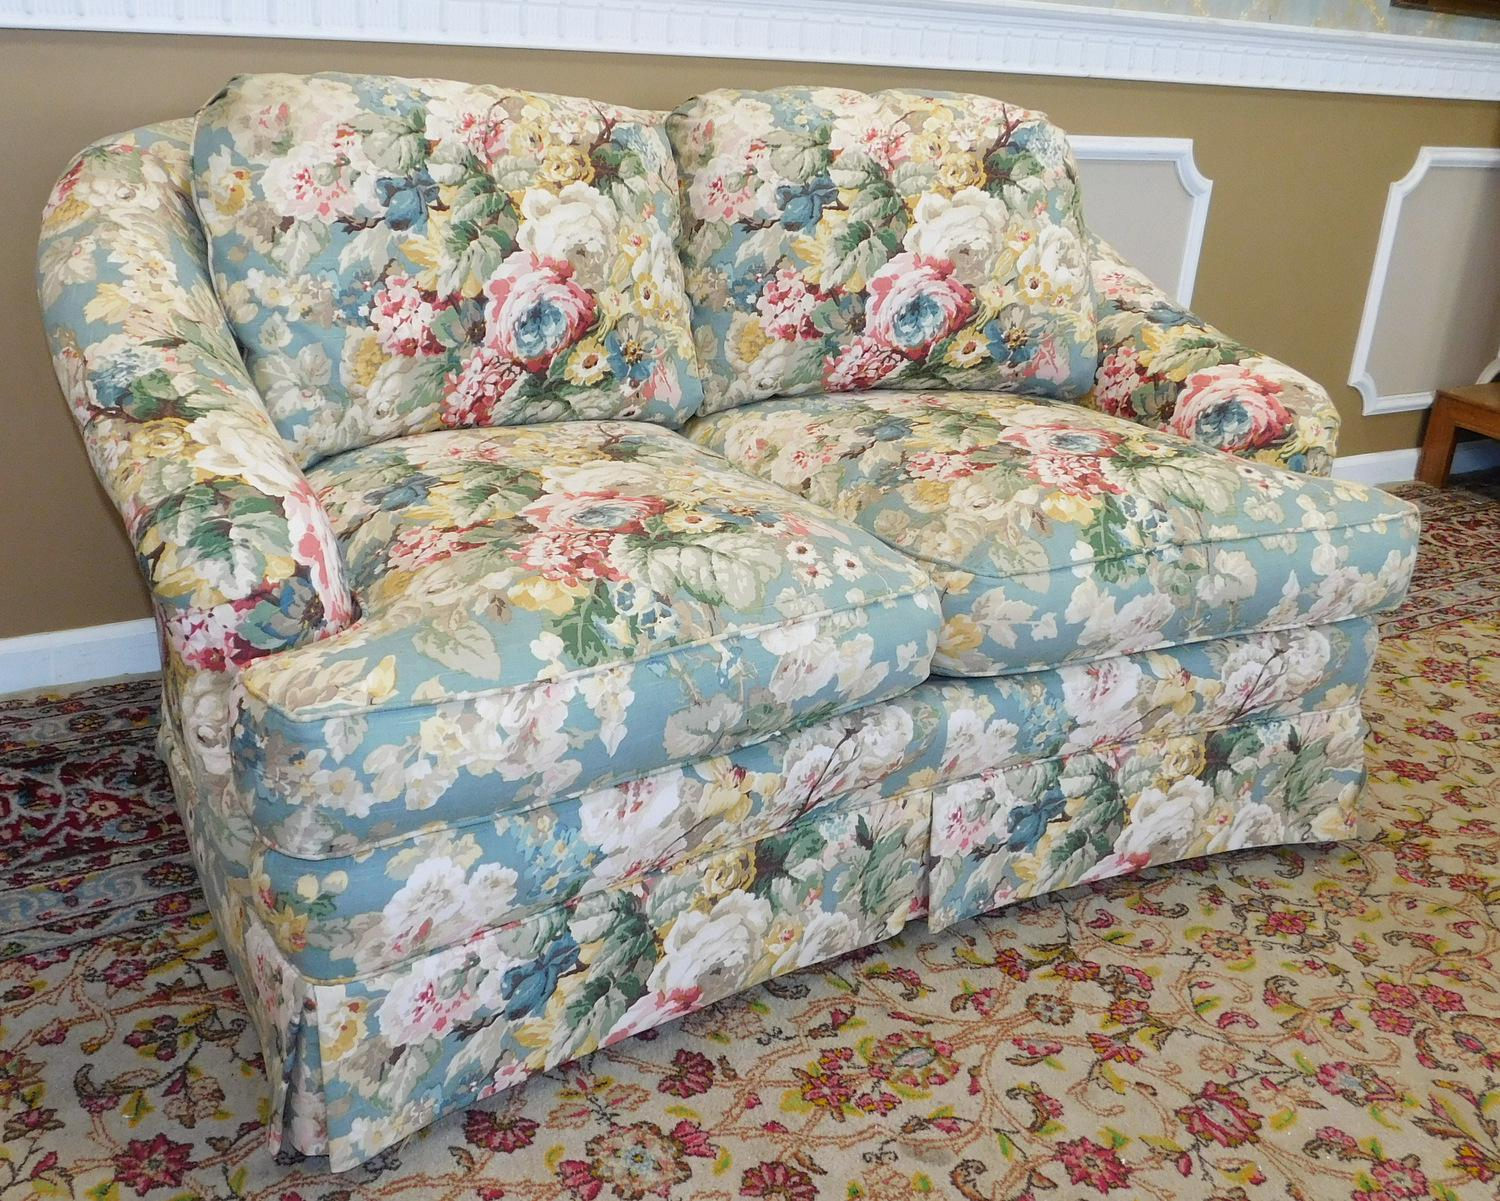 1980s contemporary overstuffed upholstered floral sherrill furniture rh chairish com Overstuffed Loveseat Sleeper Cottage Style Overstuffed Sofa